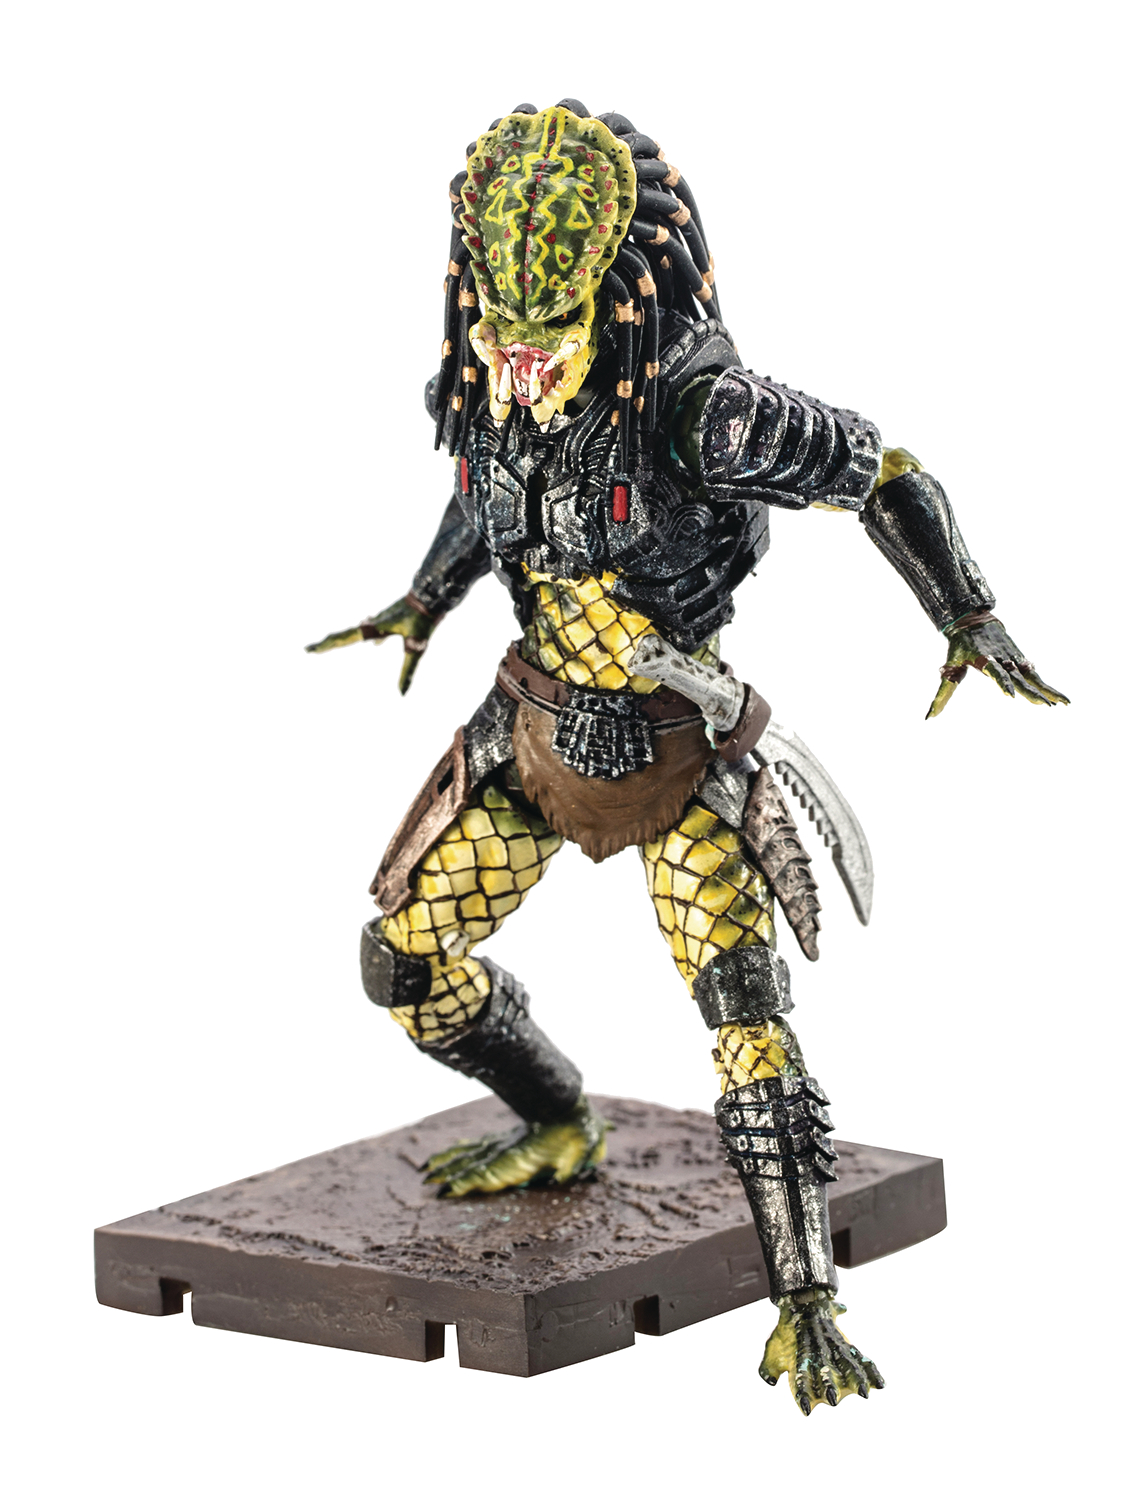 PREDATOR 2 LOST PREDATOR PX 1/18 SCALE FIG (AUG189257)